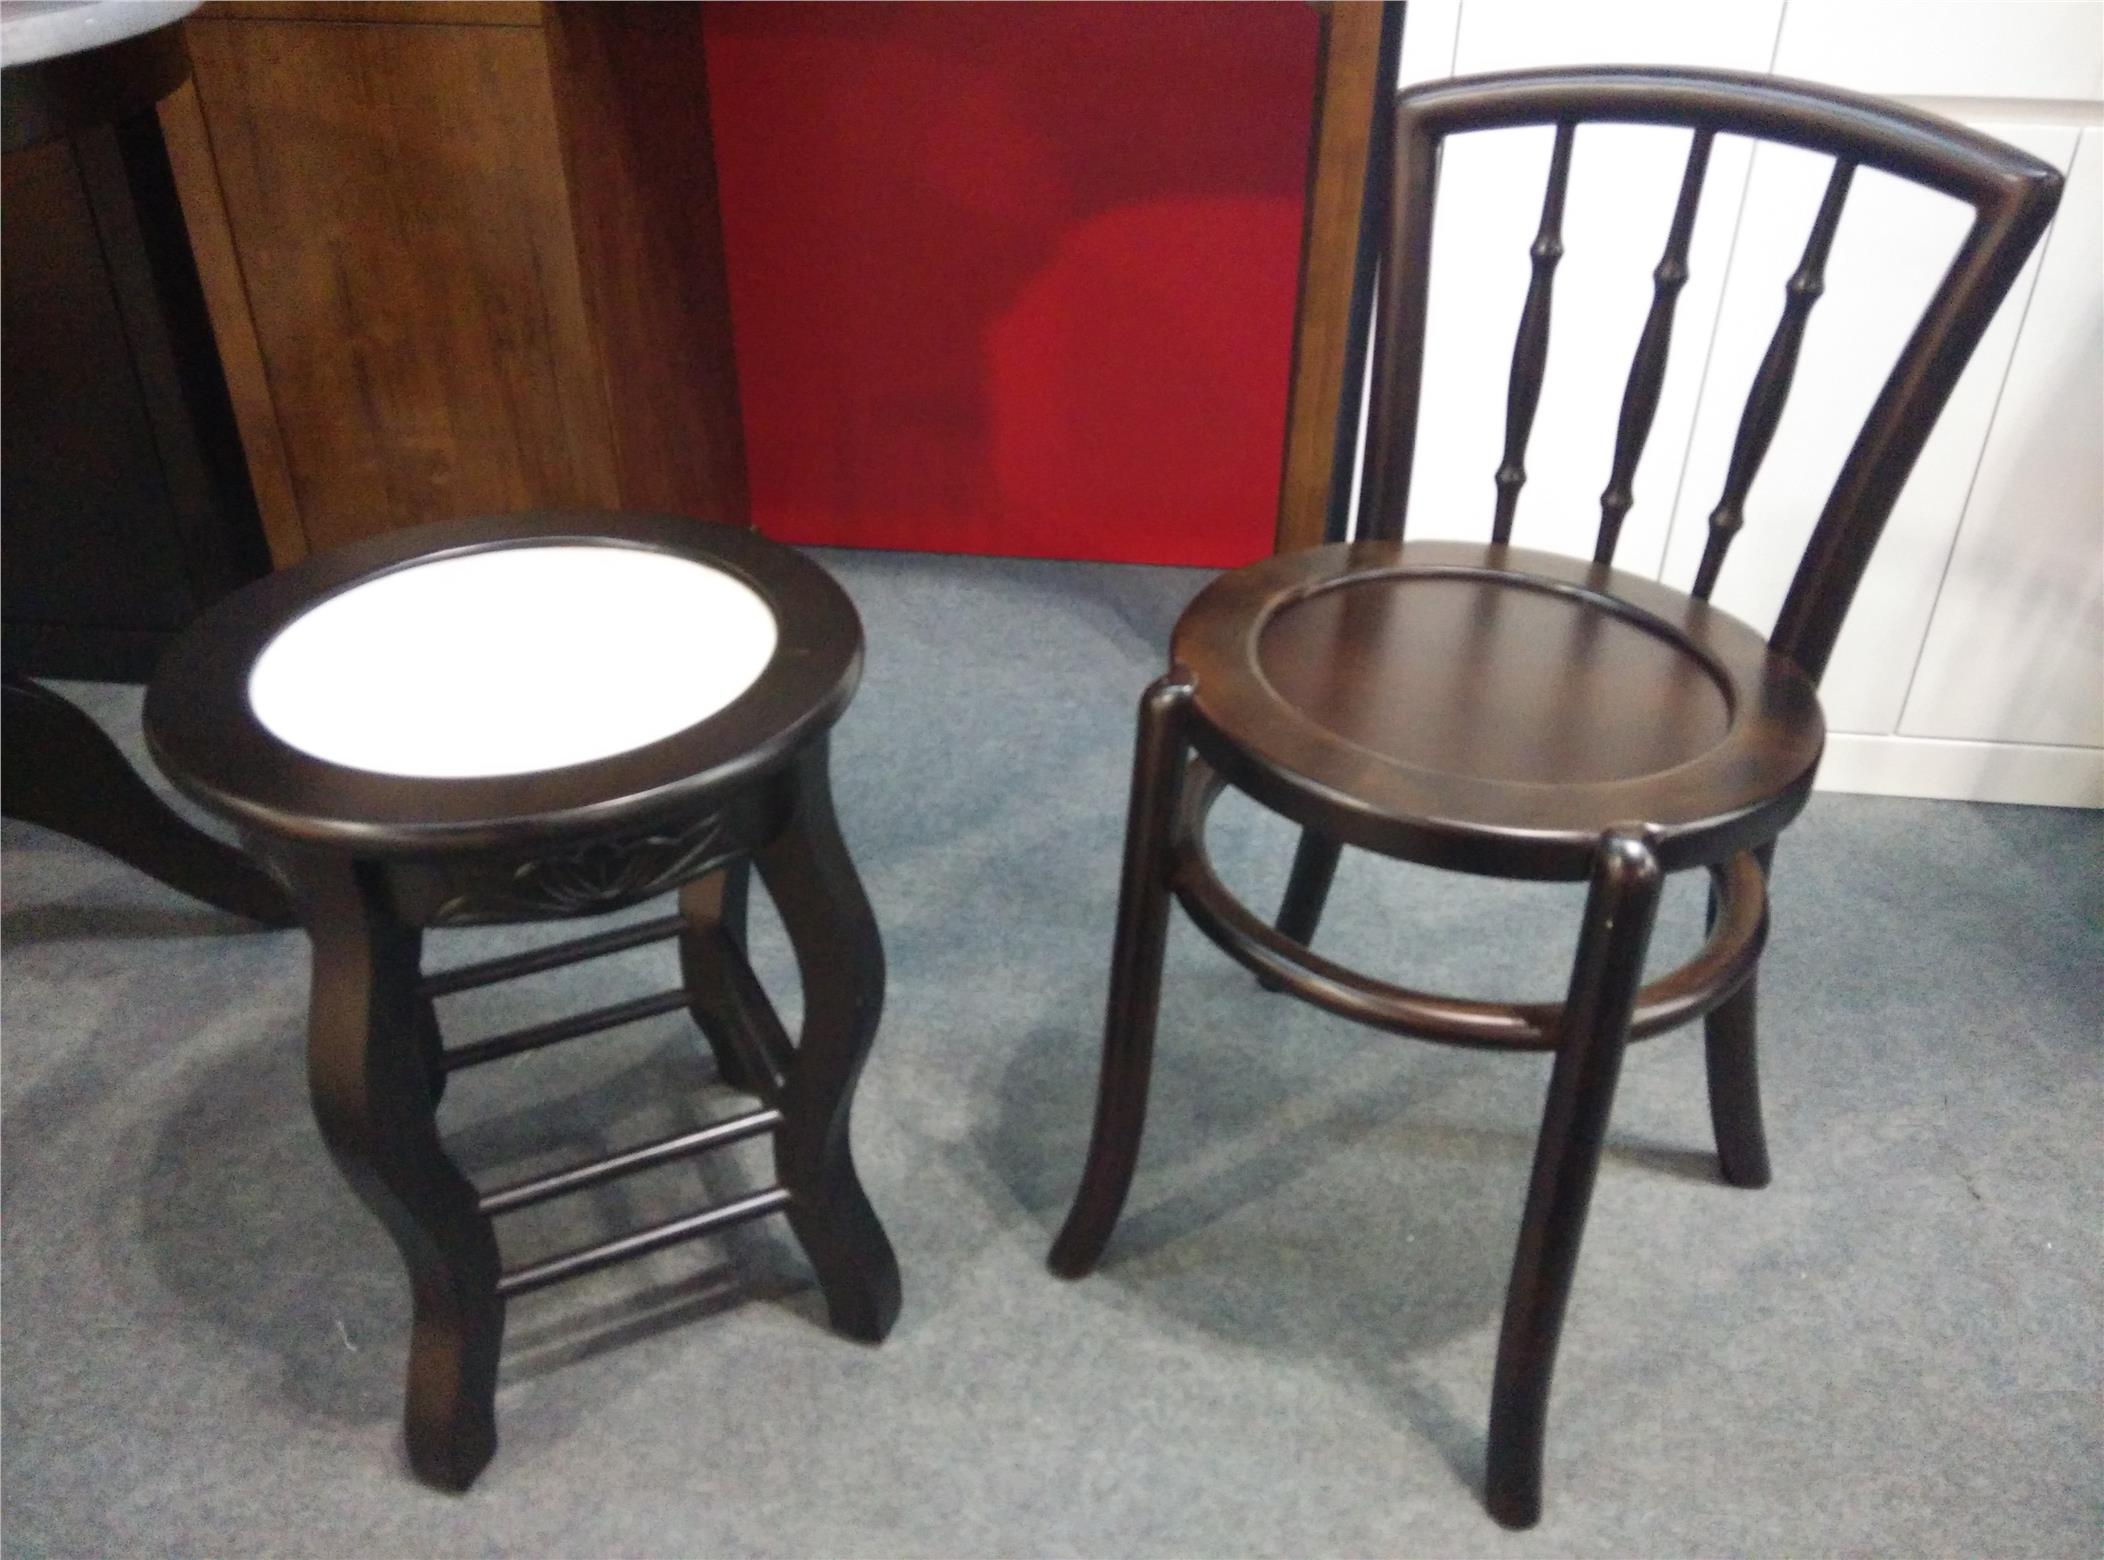 stool chair in malay formal sitting room chairs kopitiam classic antique marble coff end 7 10 2021 2 46 pm